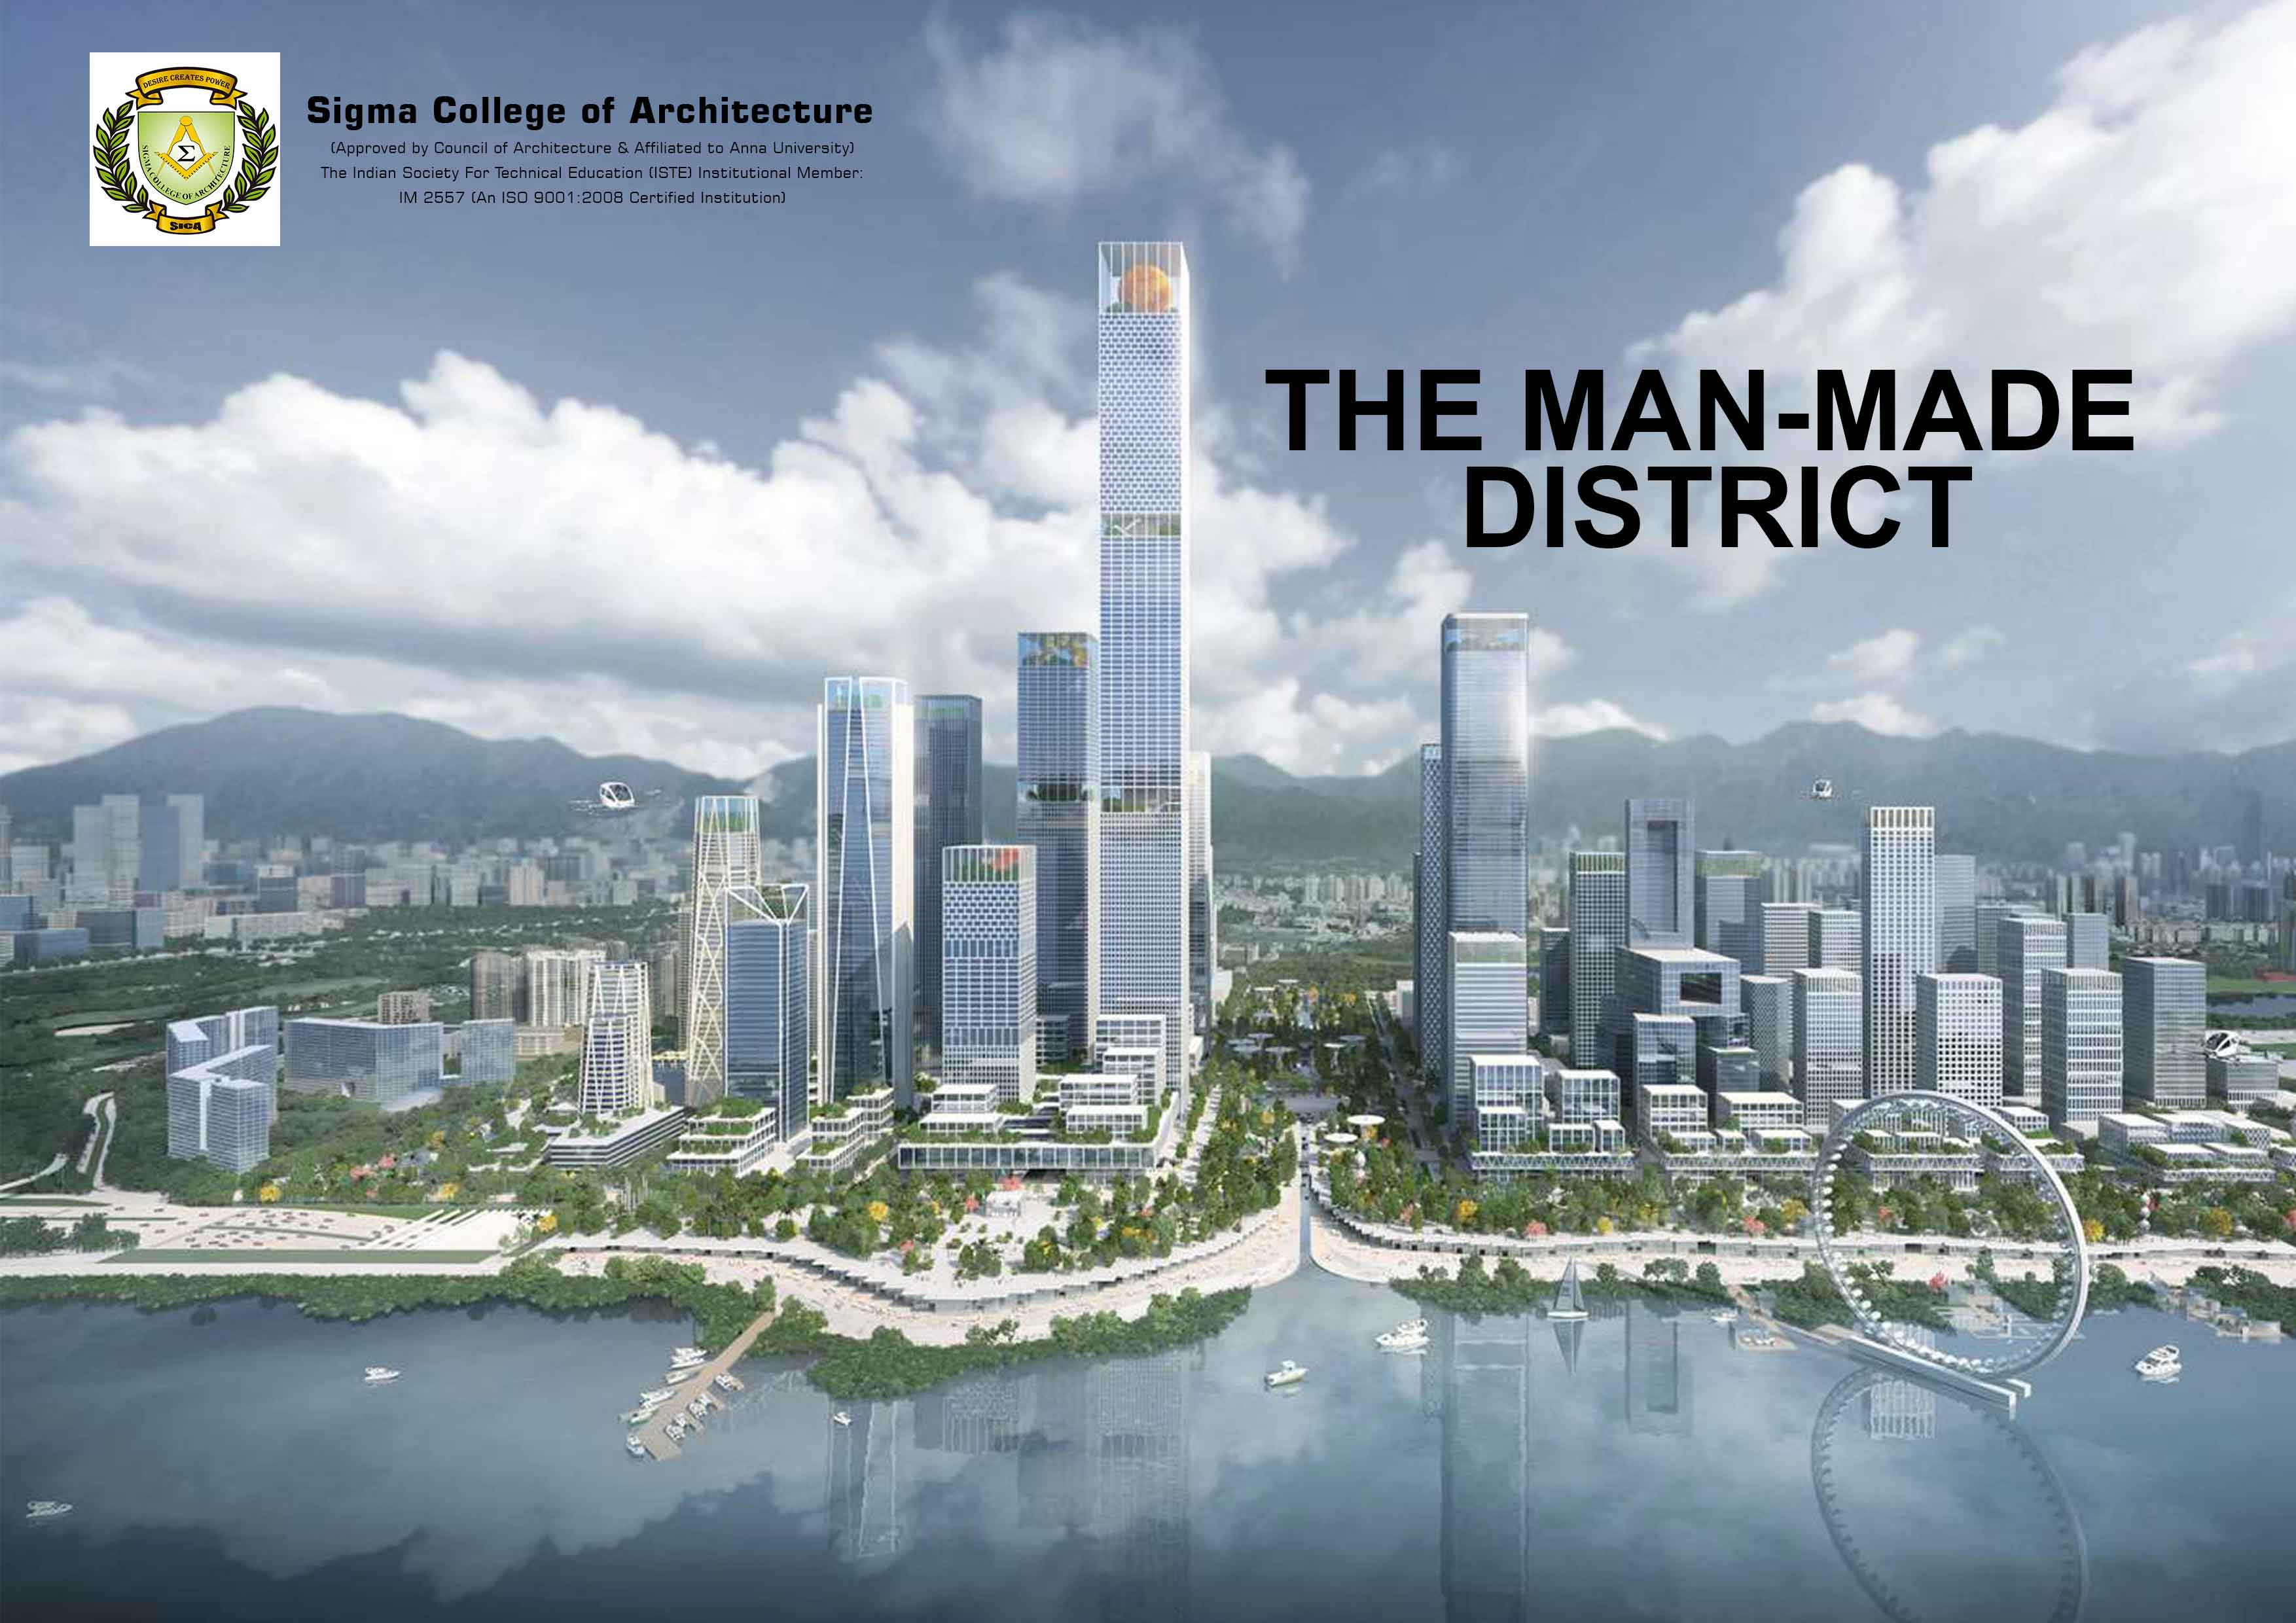 The Man-made District